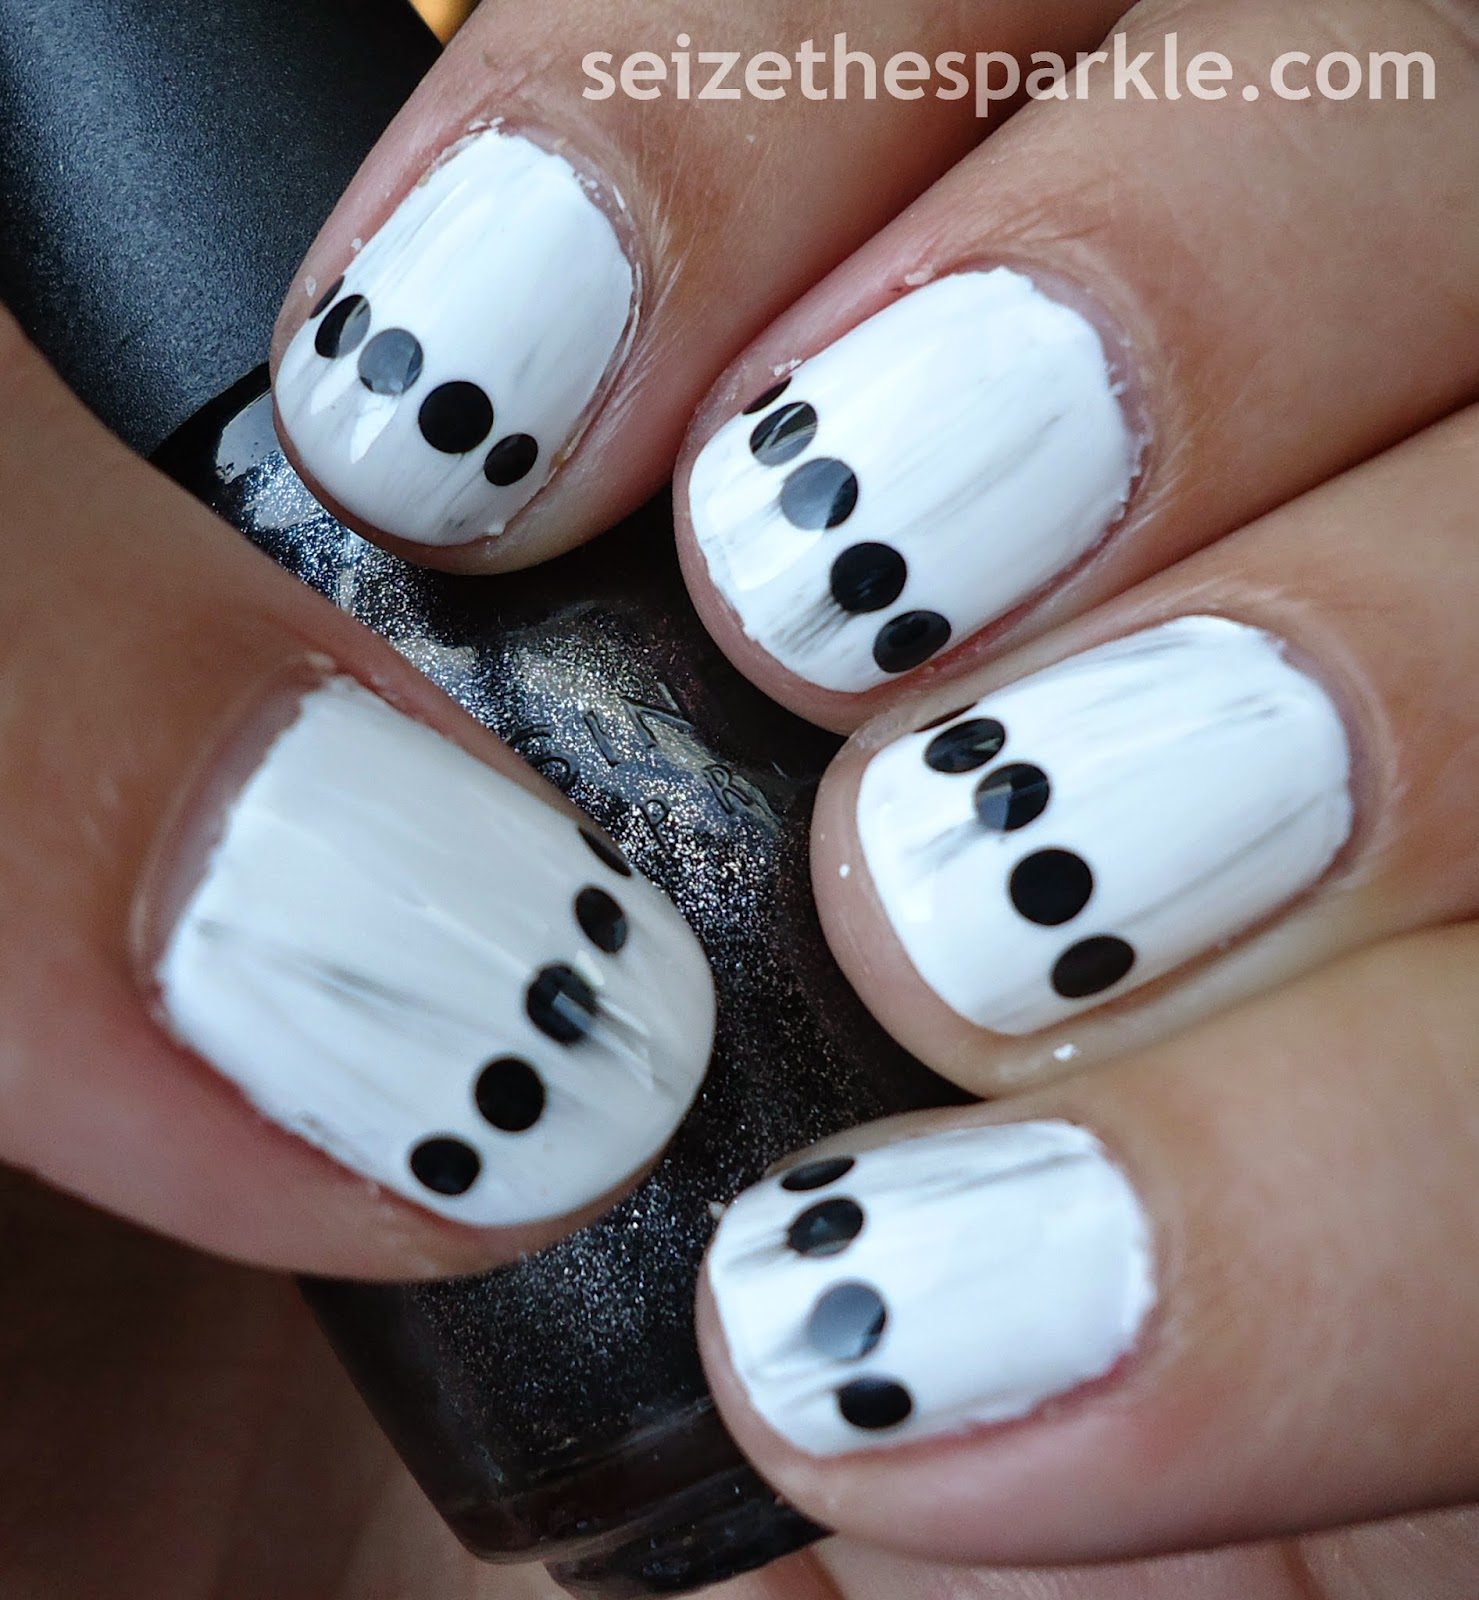 Black & White Dotticure